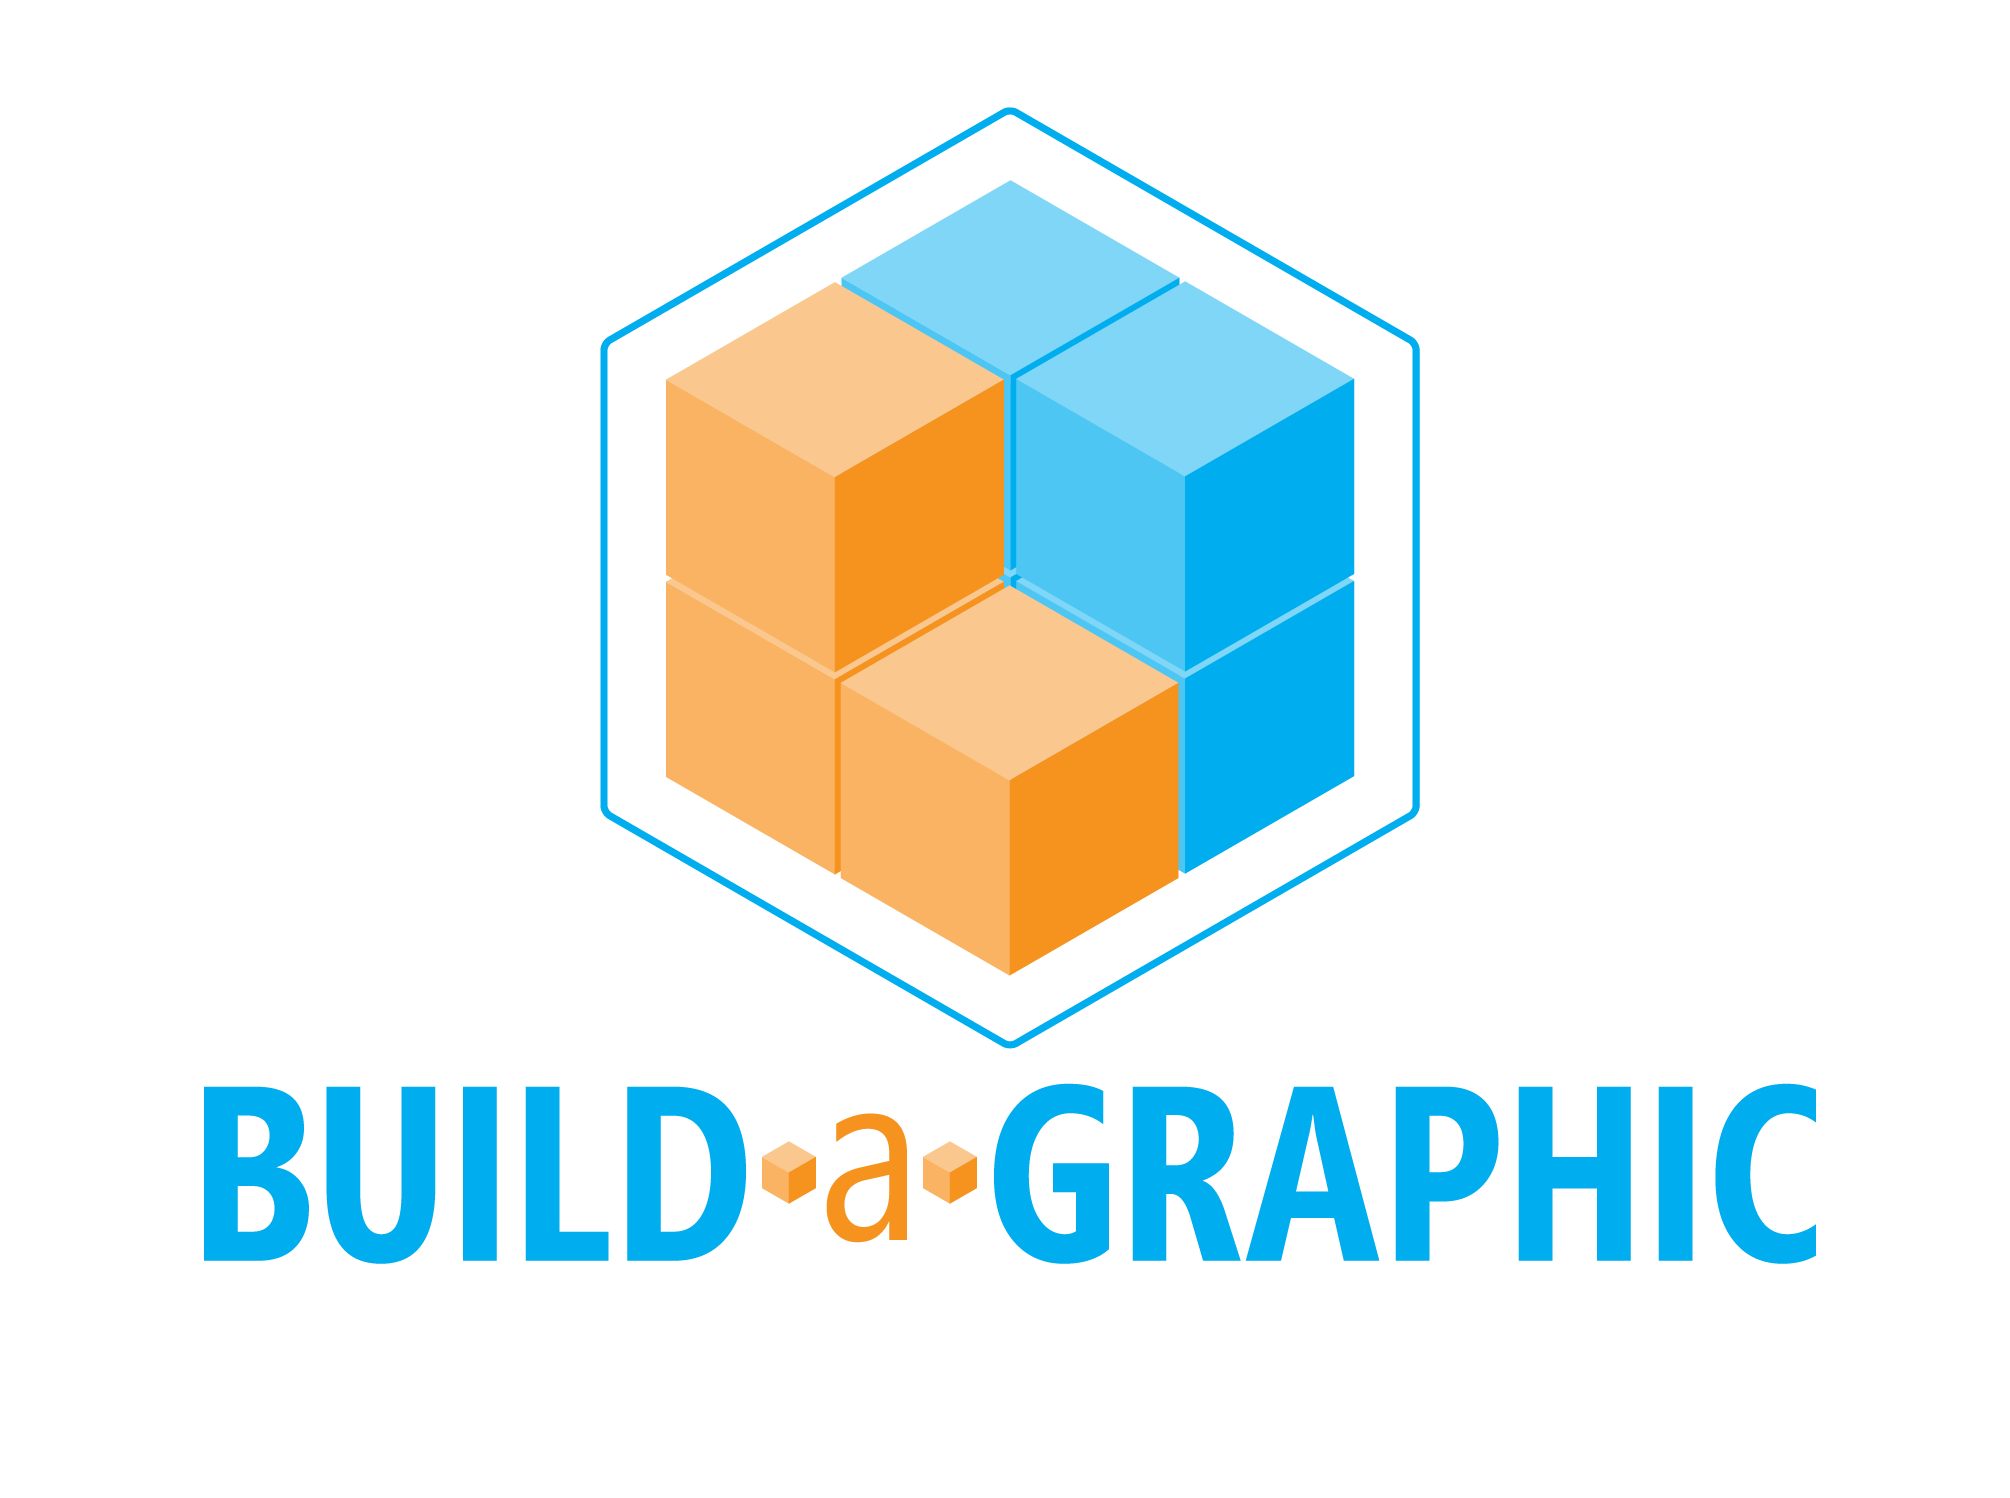 Build-a-Graphic